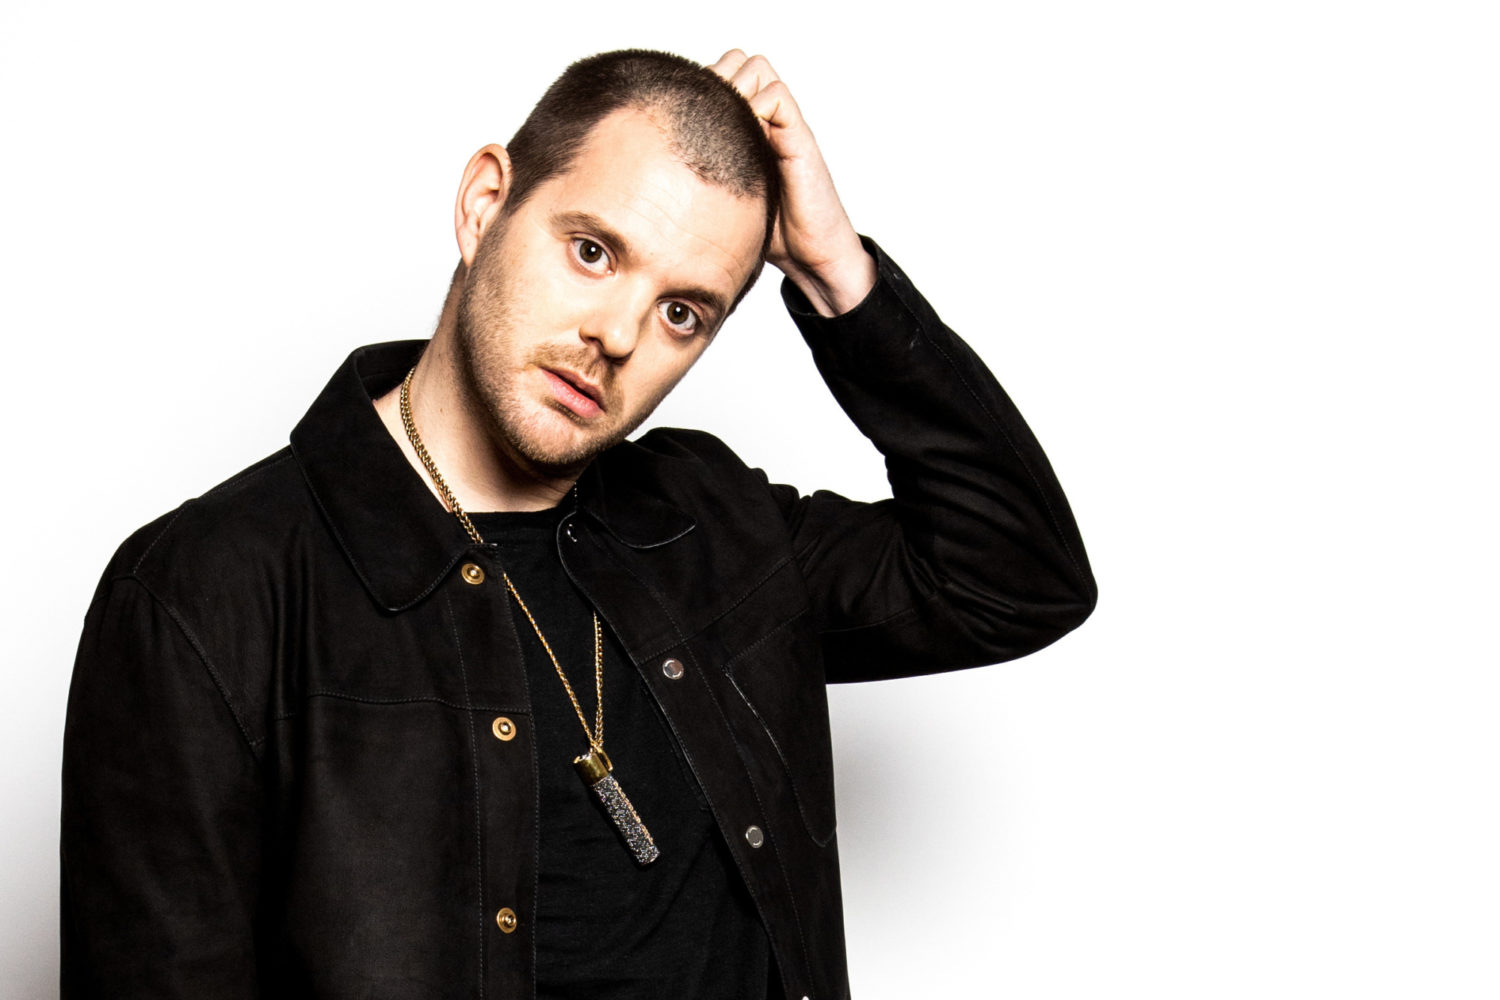 The Streets' Mike Skinner is on the cover of our May 2020 issue